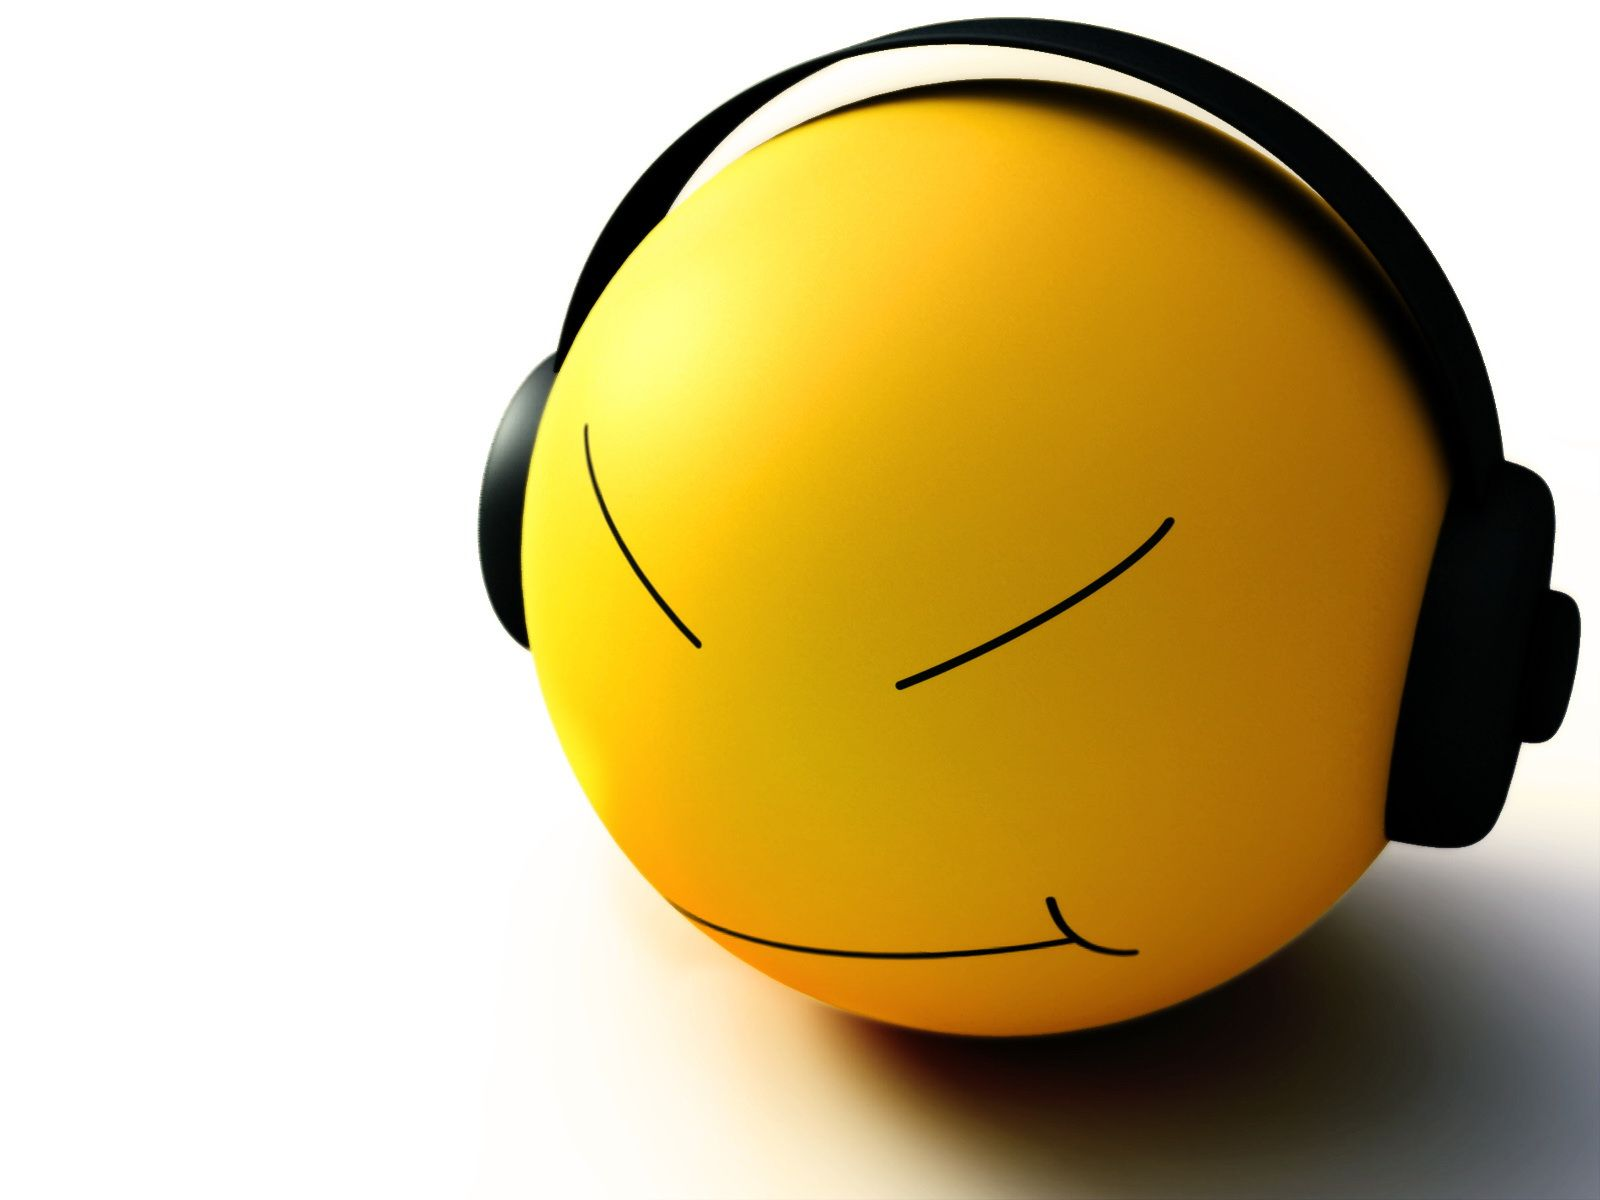 Pin By Apple Ratana On Pins On The Go Smile Wallpaper Smiley Music Wallpaper